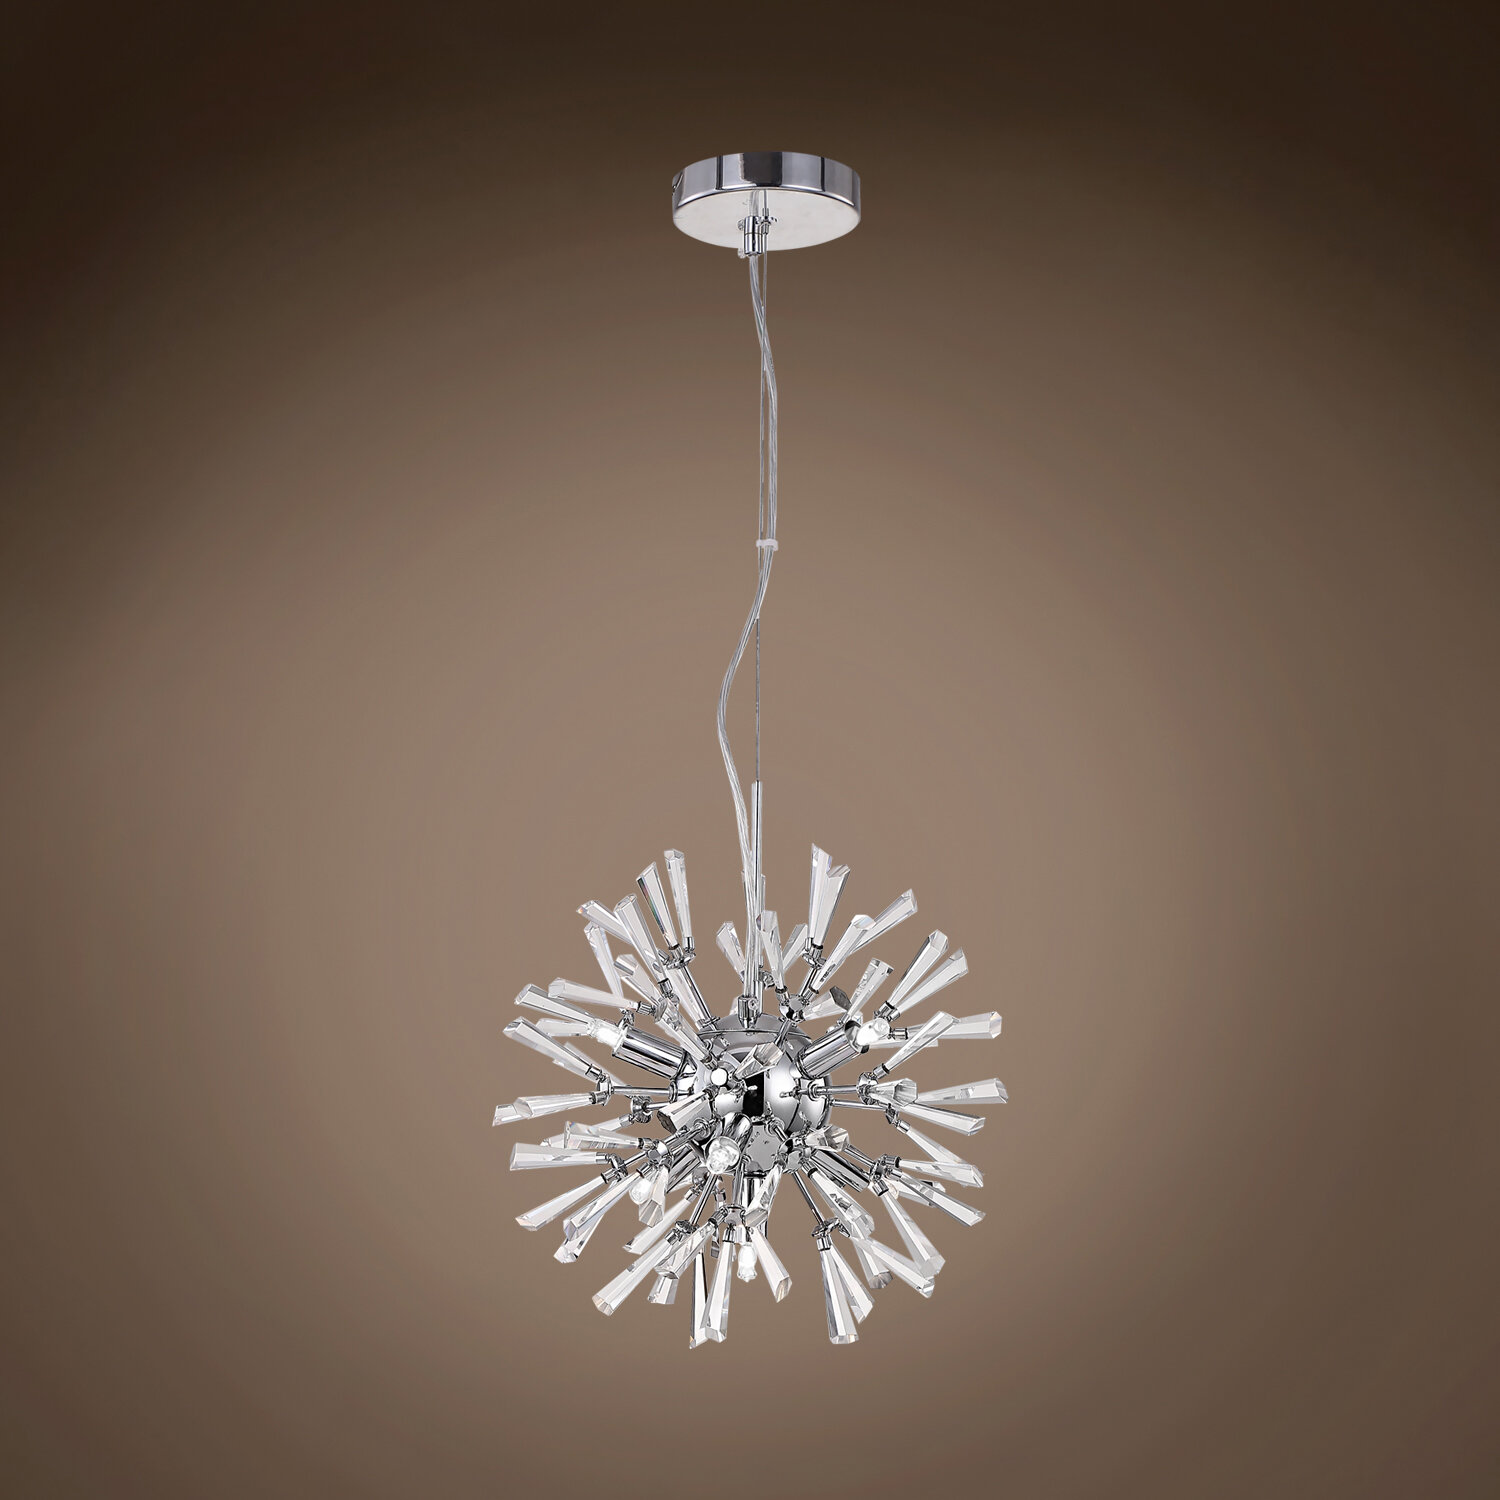 Alexa 7 Light Sputnik Chandelier